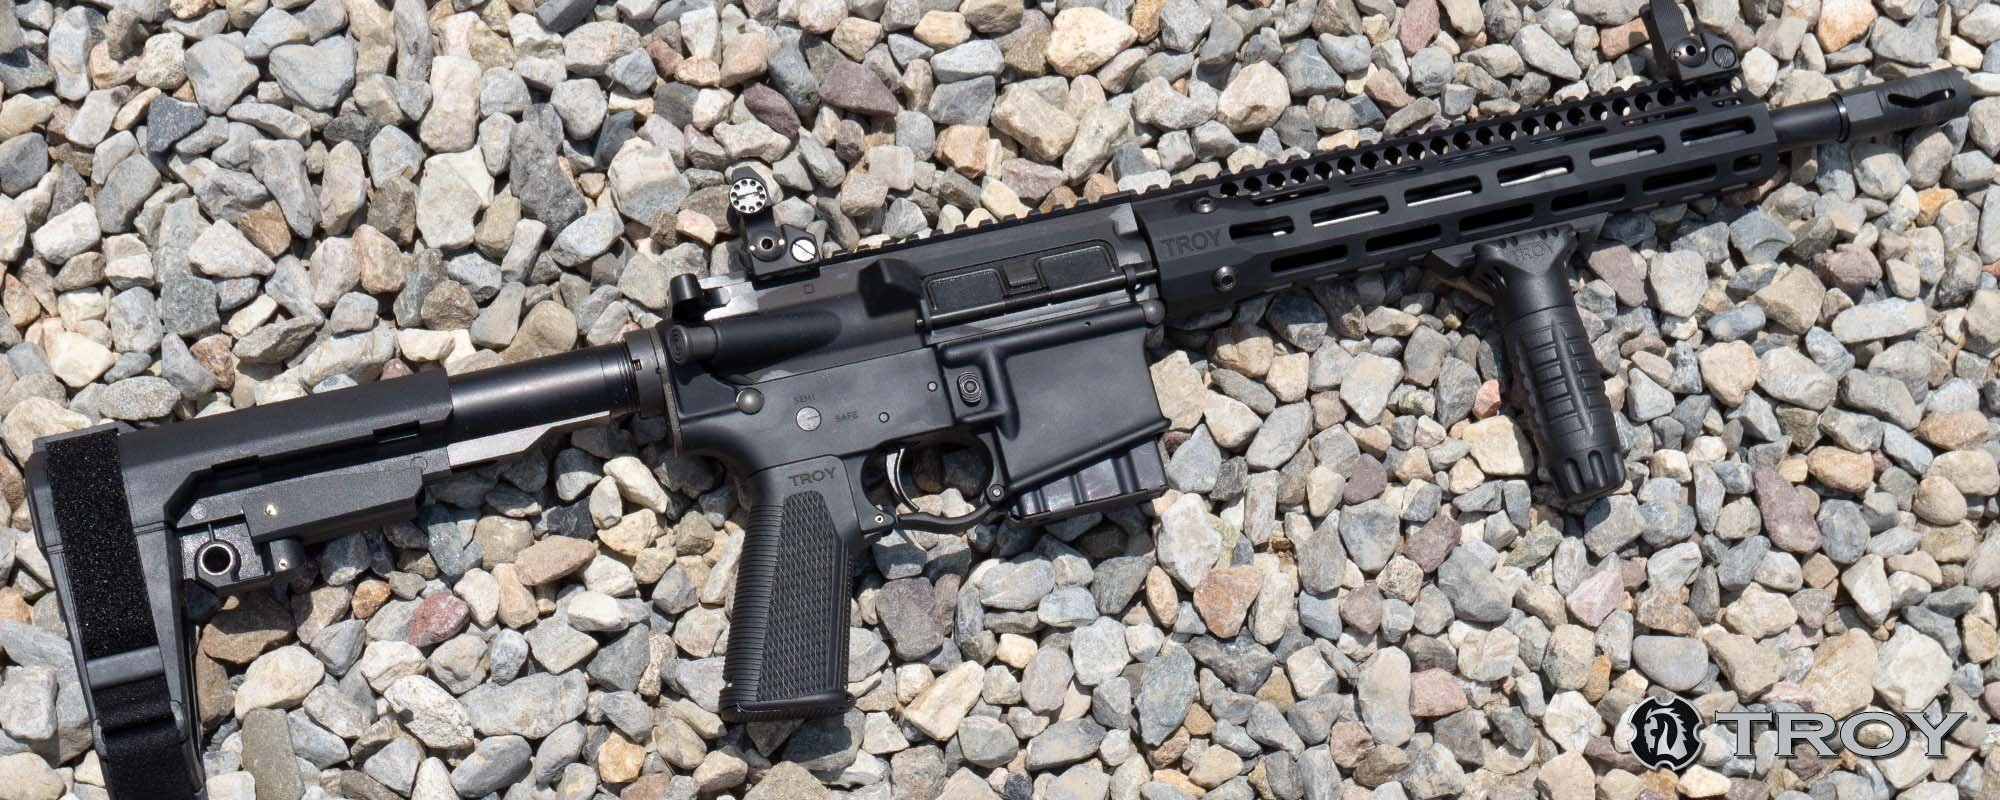 """Welcoming Tech Ops International - Exclusive Troy A4 """"Other Firearm"""" Distributor!"""